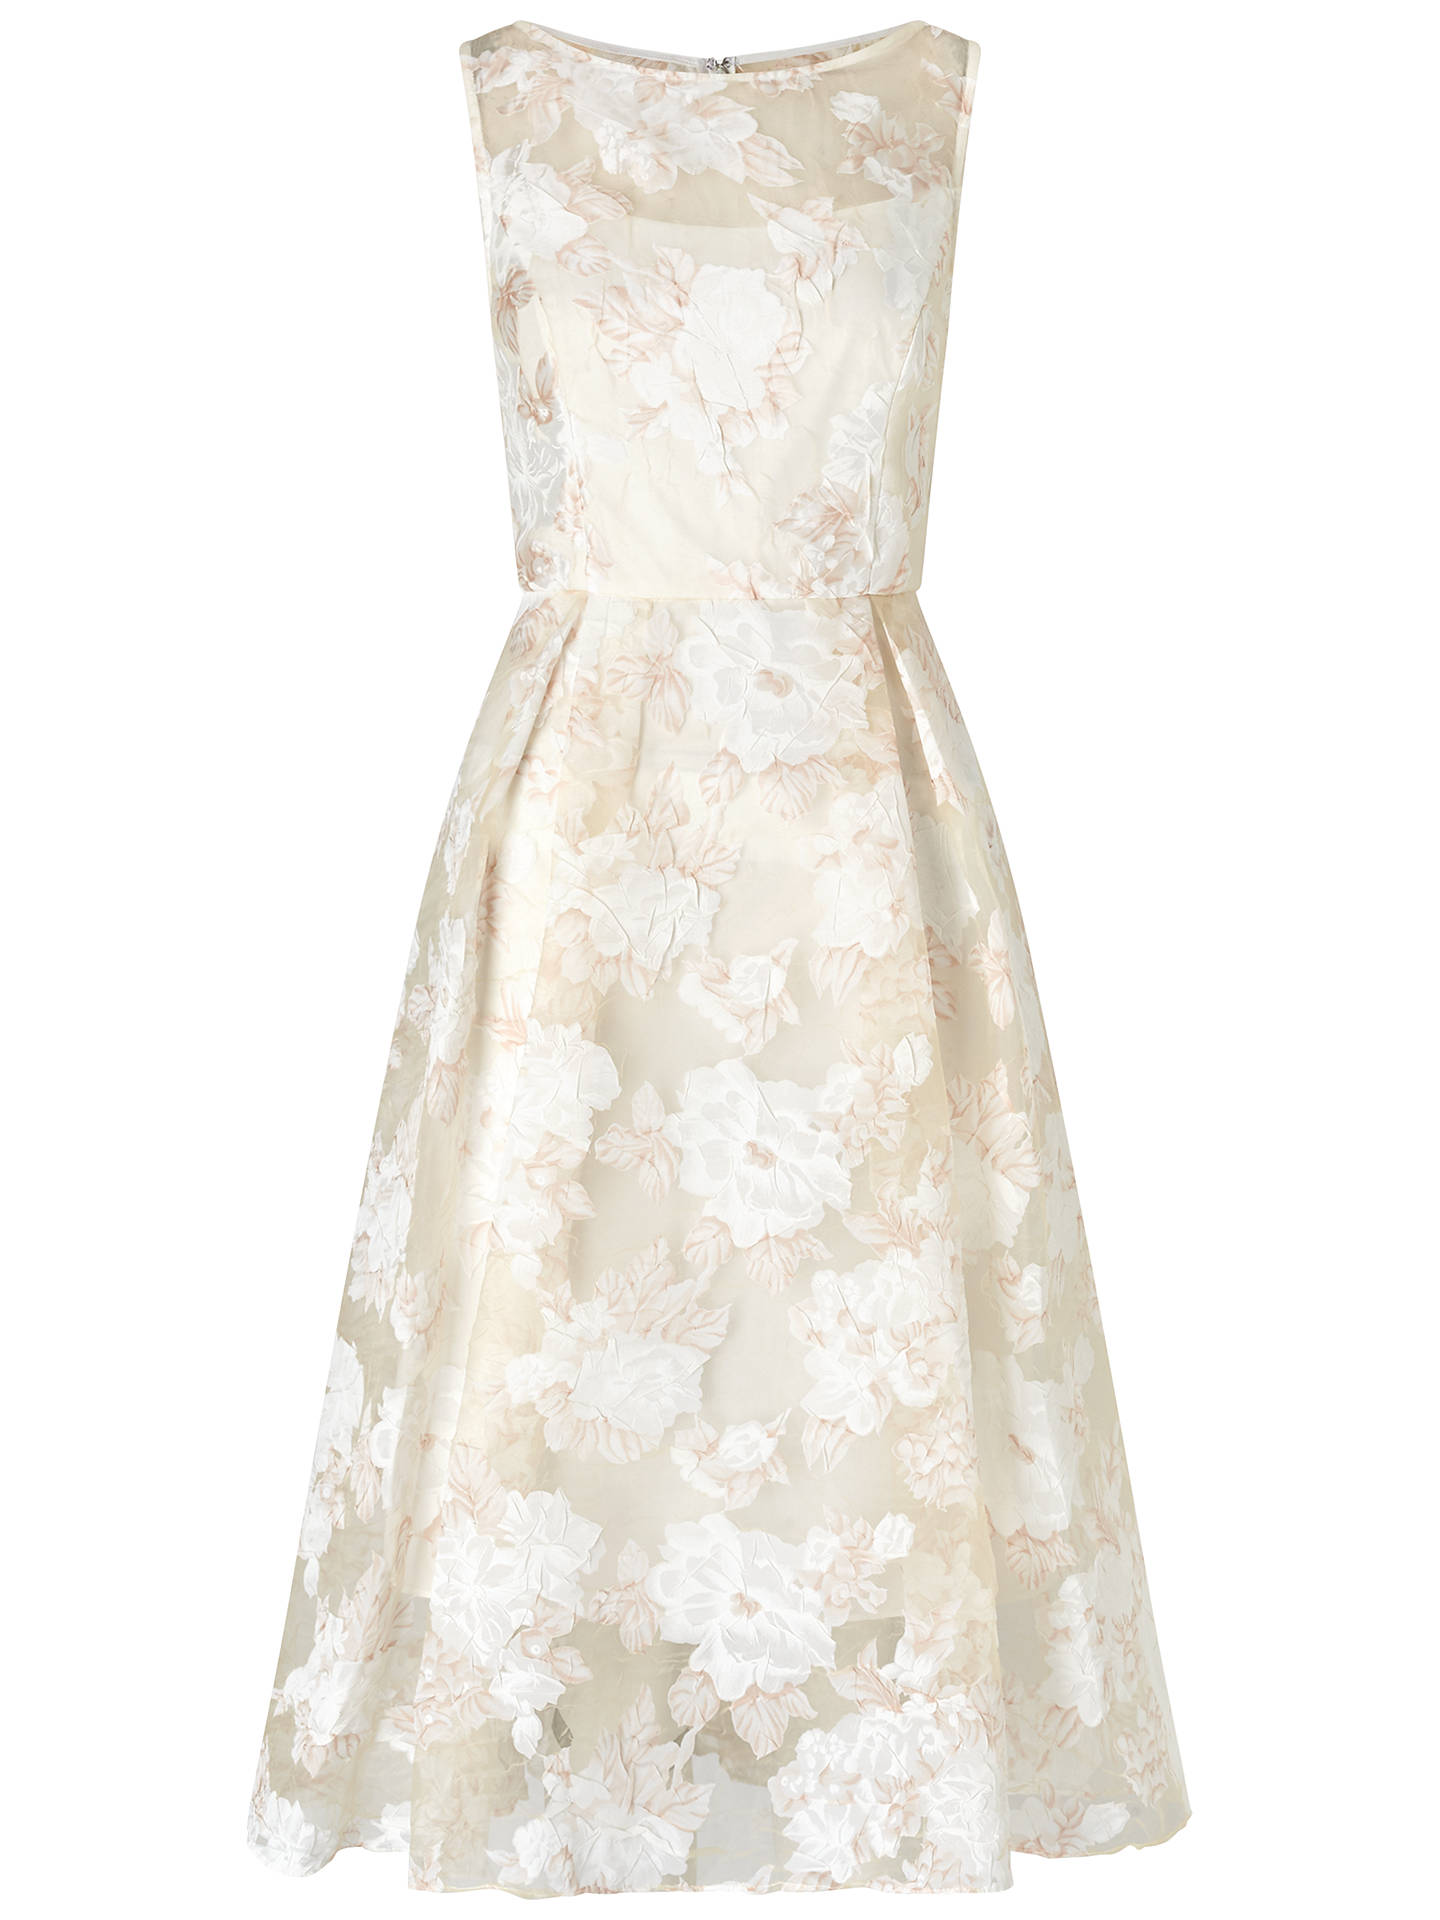 BuyAdrianna Papell Printed Organza Midi Dress, Peach/Ivory, 8 Online at johnlewis.com